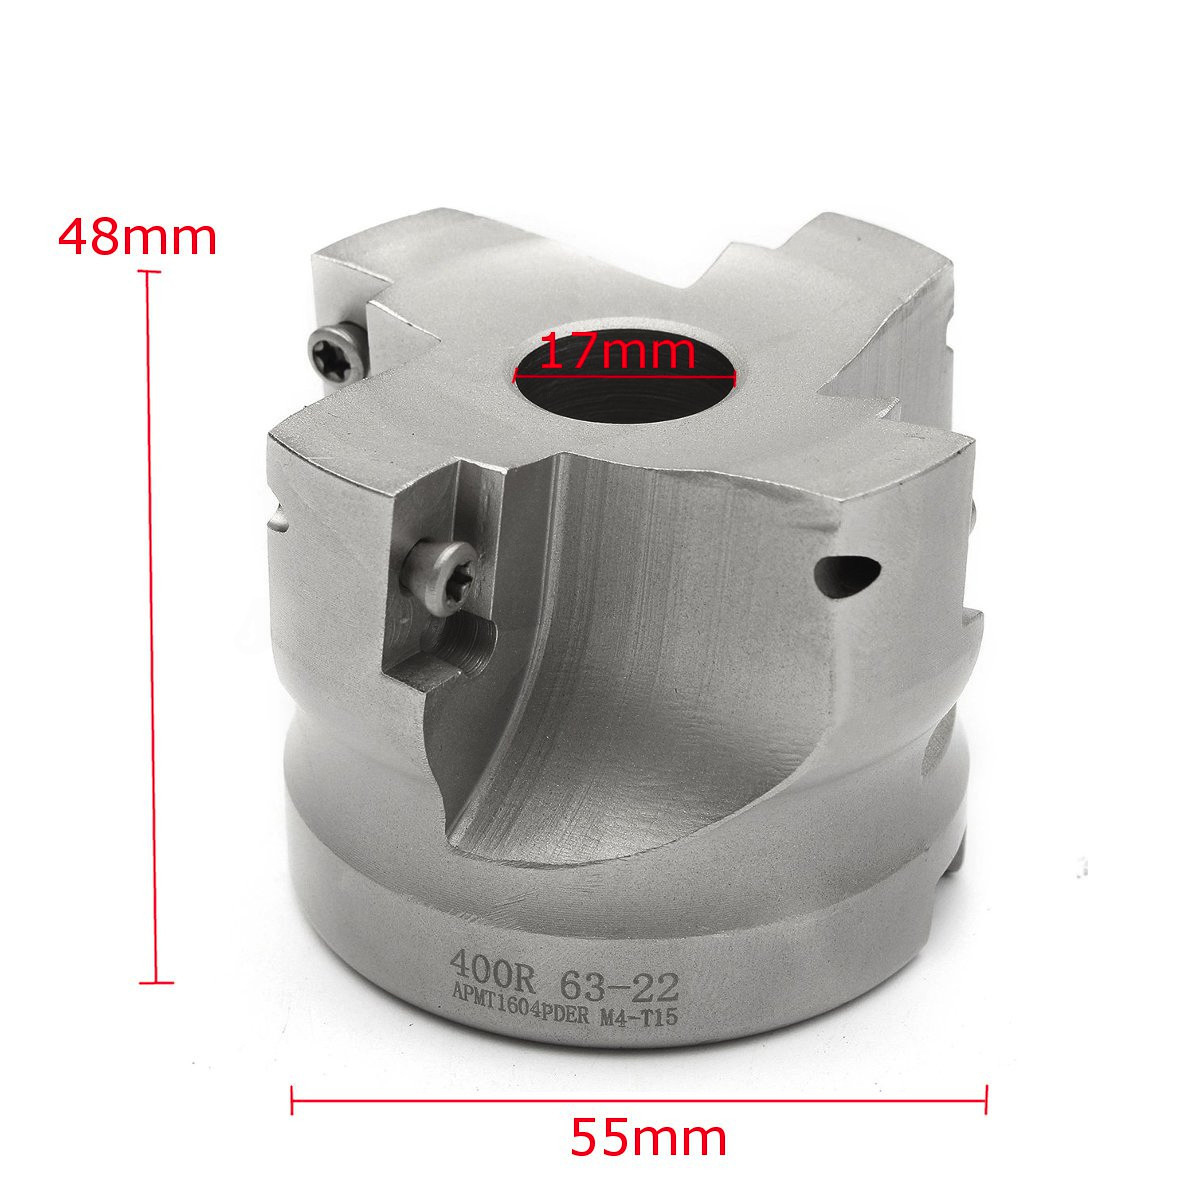 55mm RAP 400R-63-22-4F Lathe Face Milling Cutter With Wrench For APMT1604 Inserts Milling Machine precision m16 bt40 400r 63 22 face endmill and 10pcs apmt1604 carbide insert new